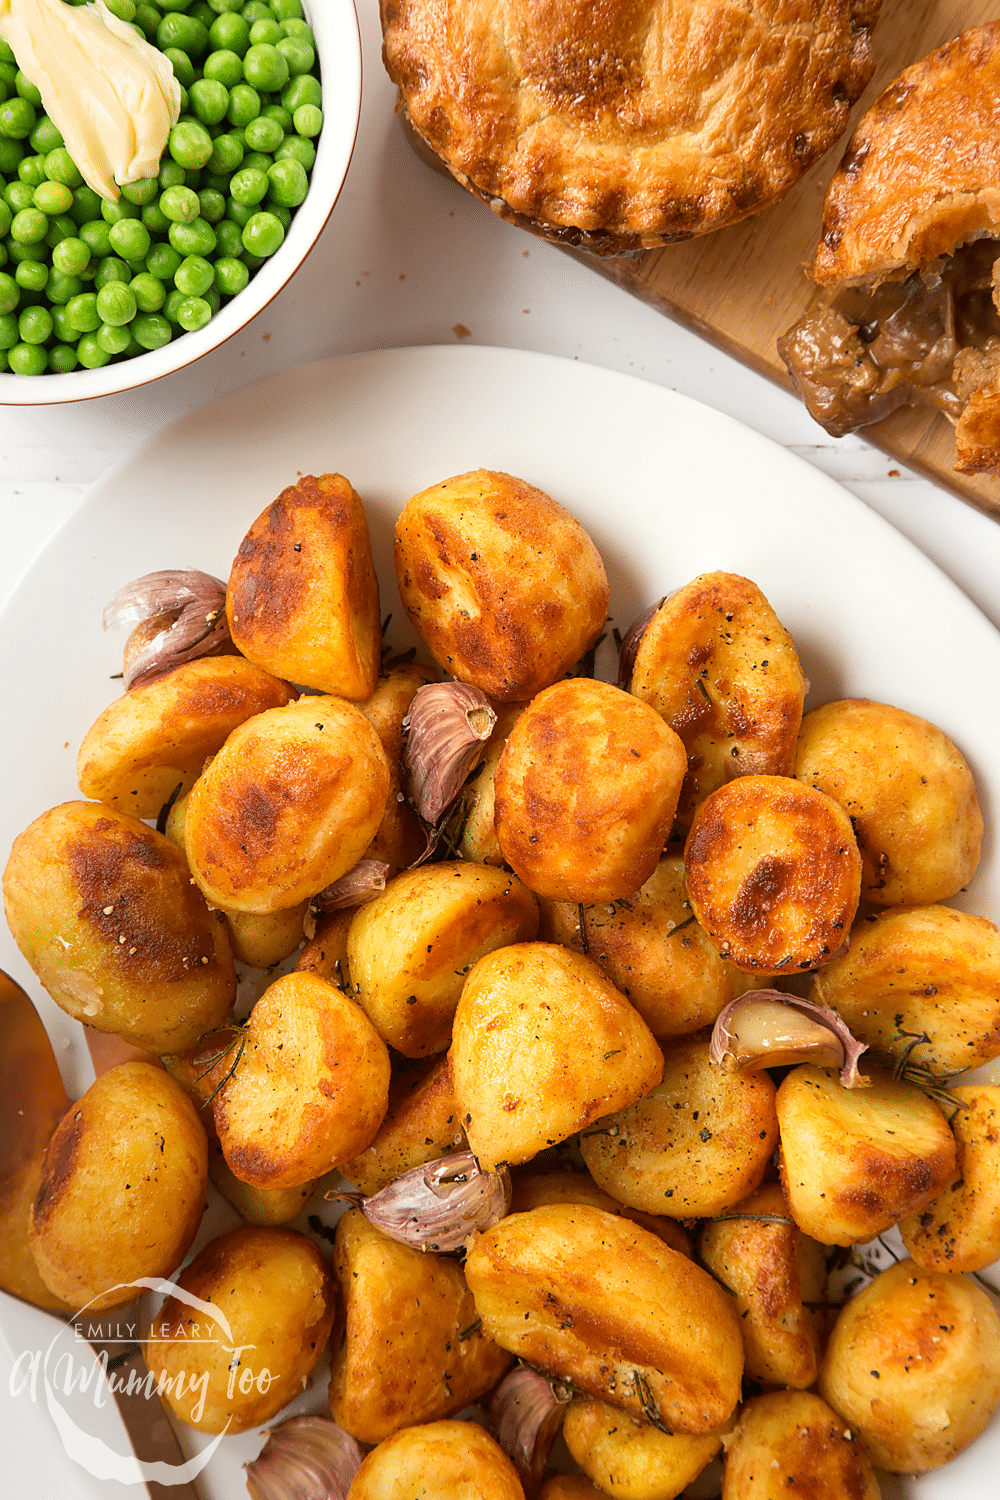 Completed how to make frozen roast potatoes taste better served alongside some peas and pies.